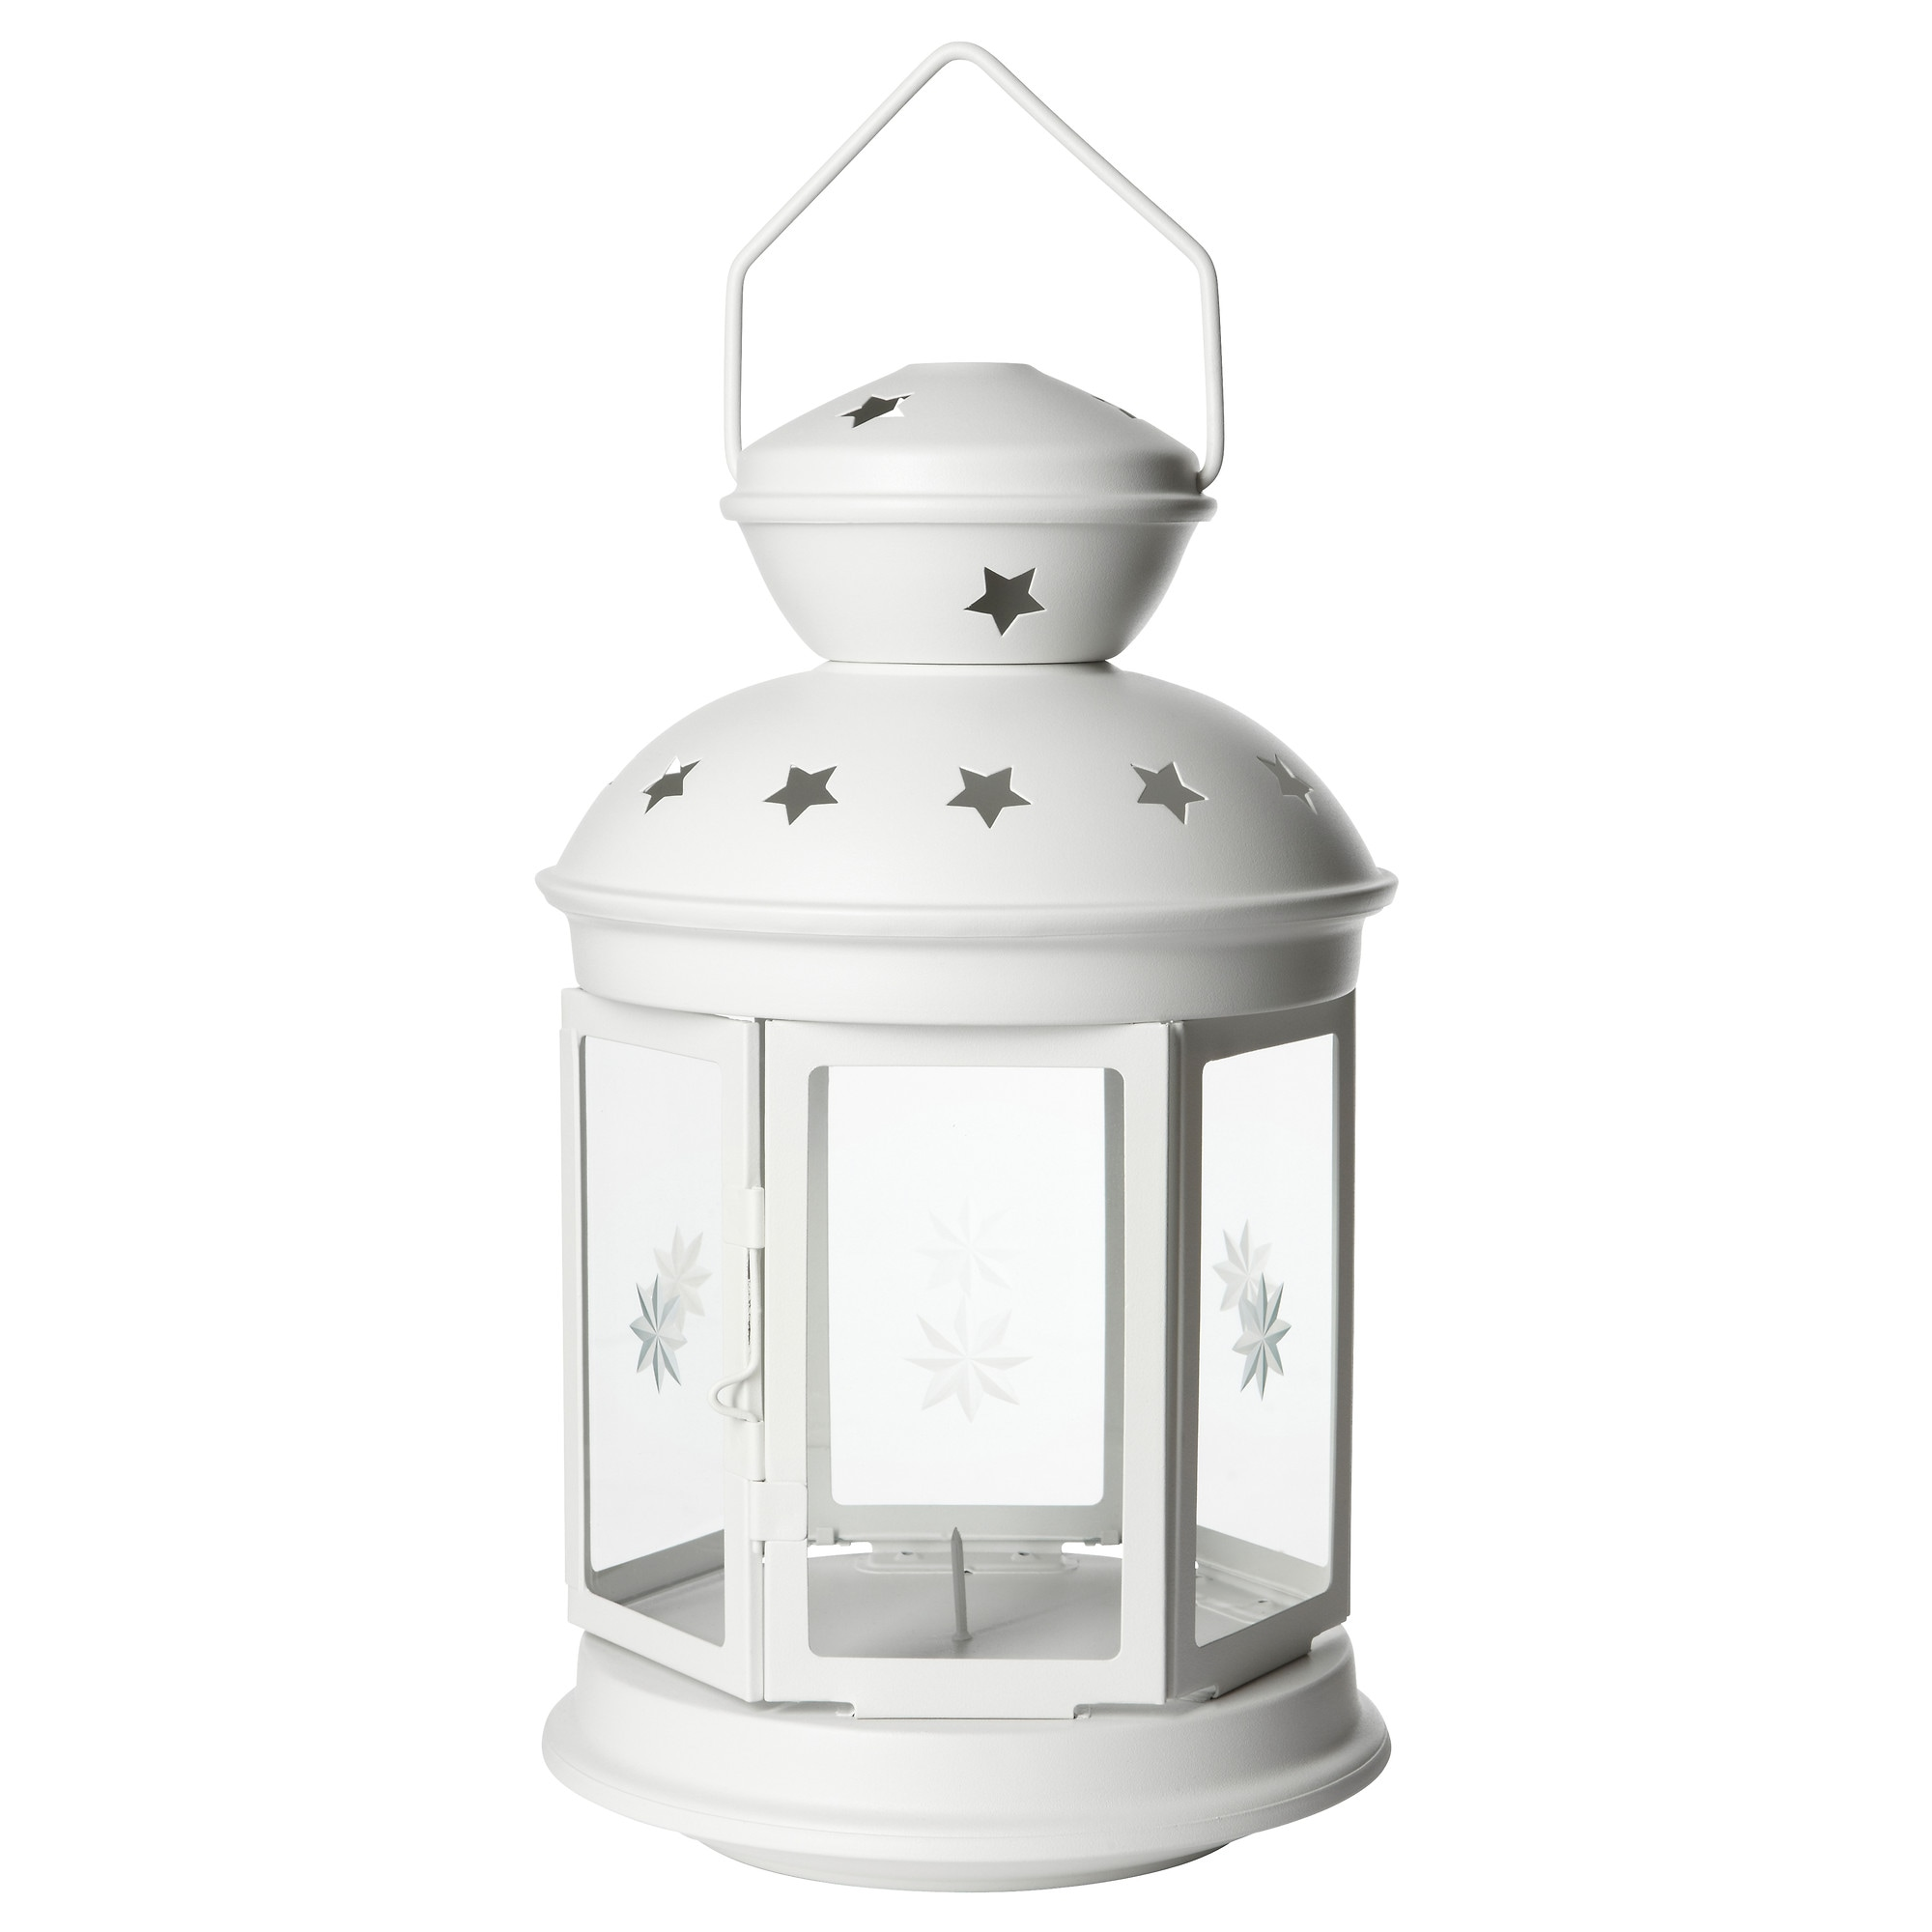 ROTERA Lantern For Block Candle, White Indoor/outdoor White Height: 15